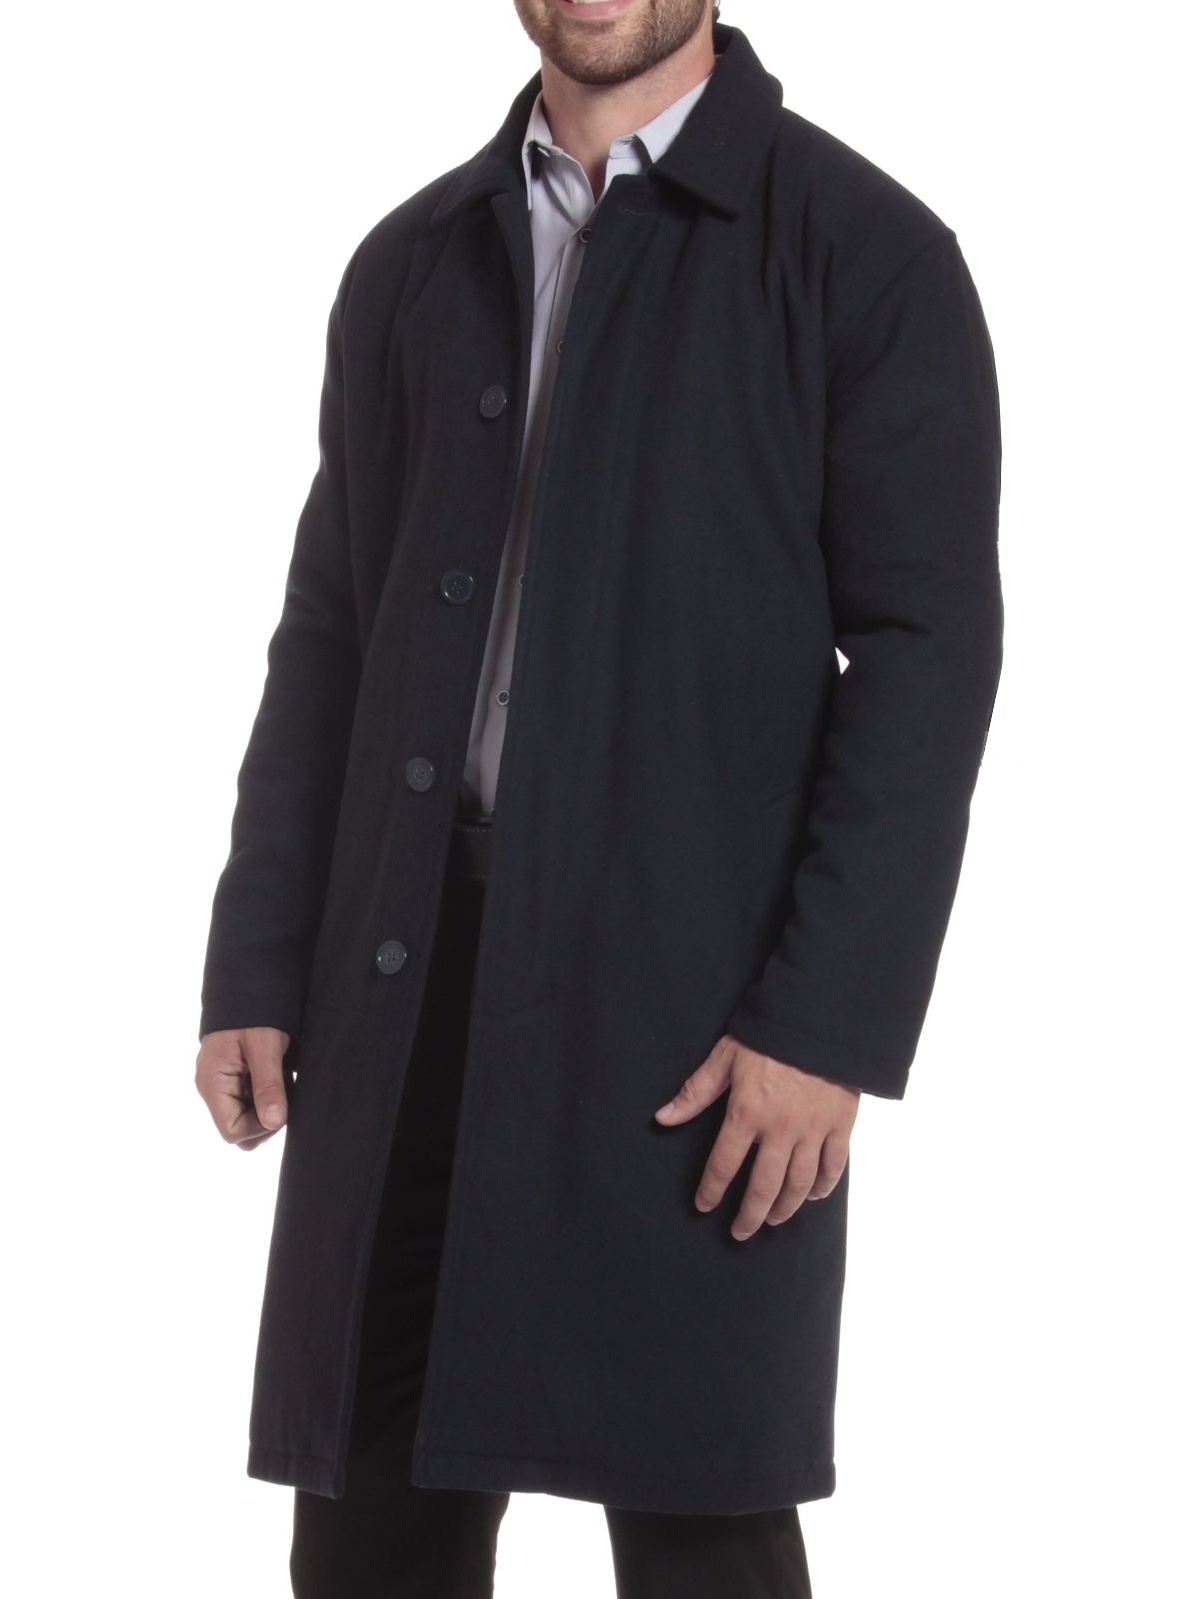 Alpine Swiss Men's Zach Knee Length Jacket Top Coat Trench Wool Blend Overcoat by alpine swiss